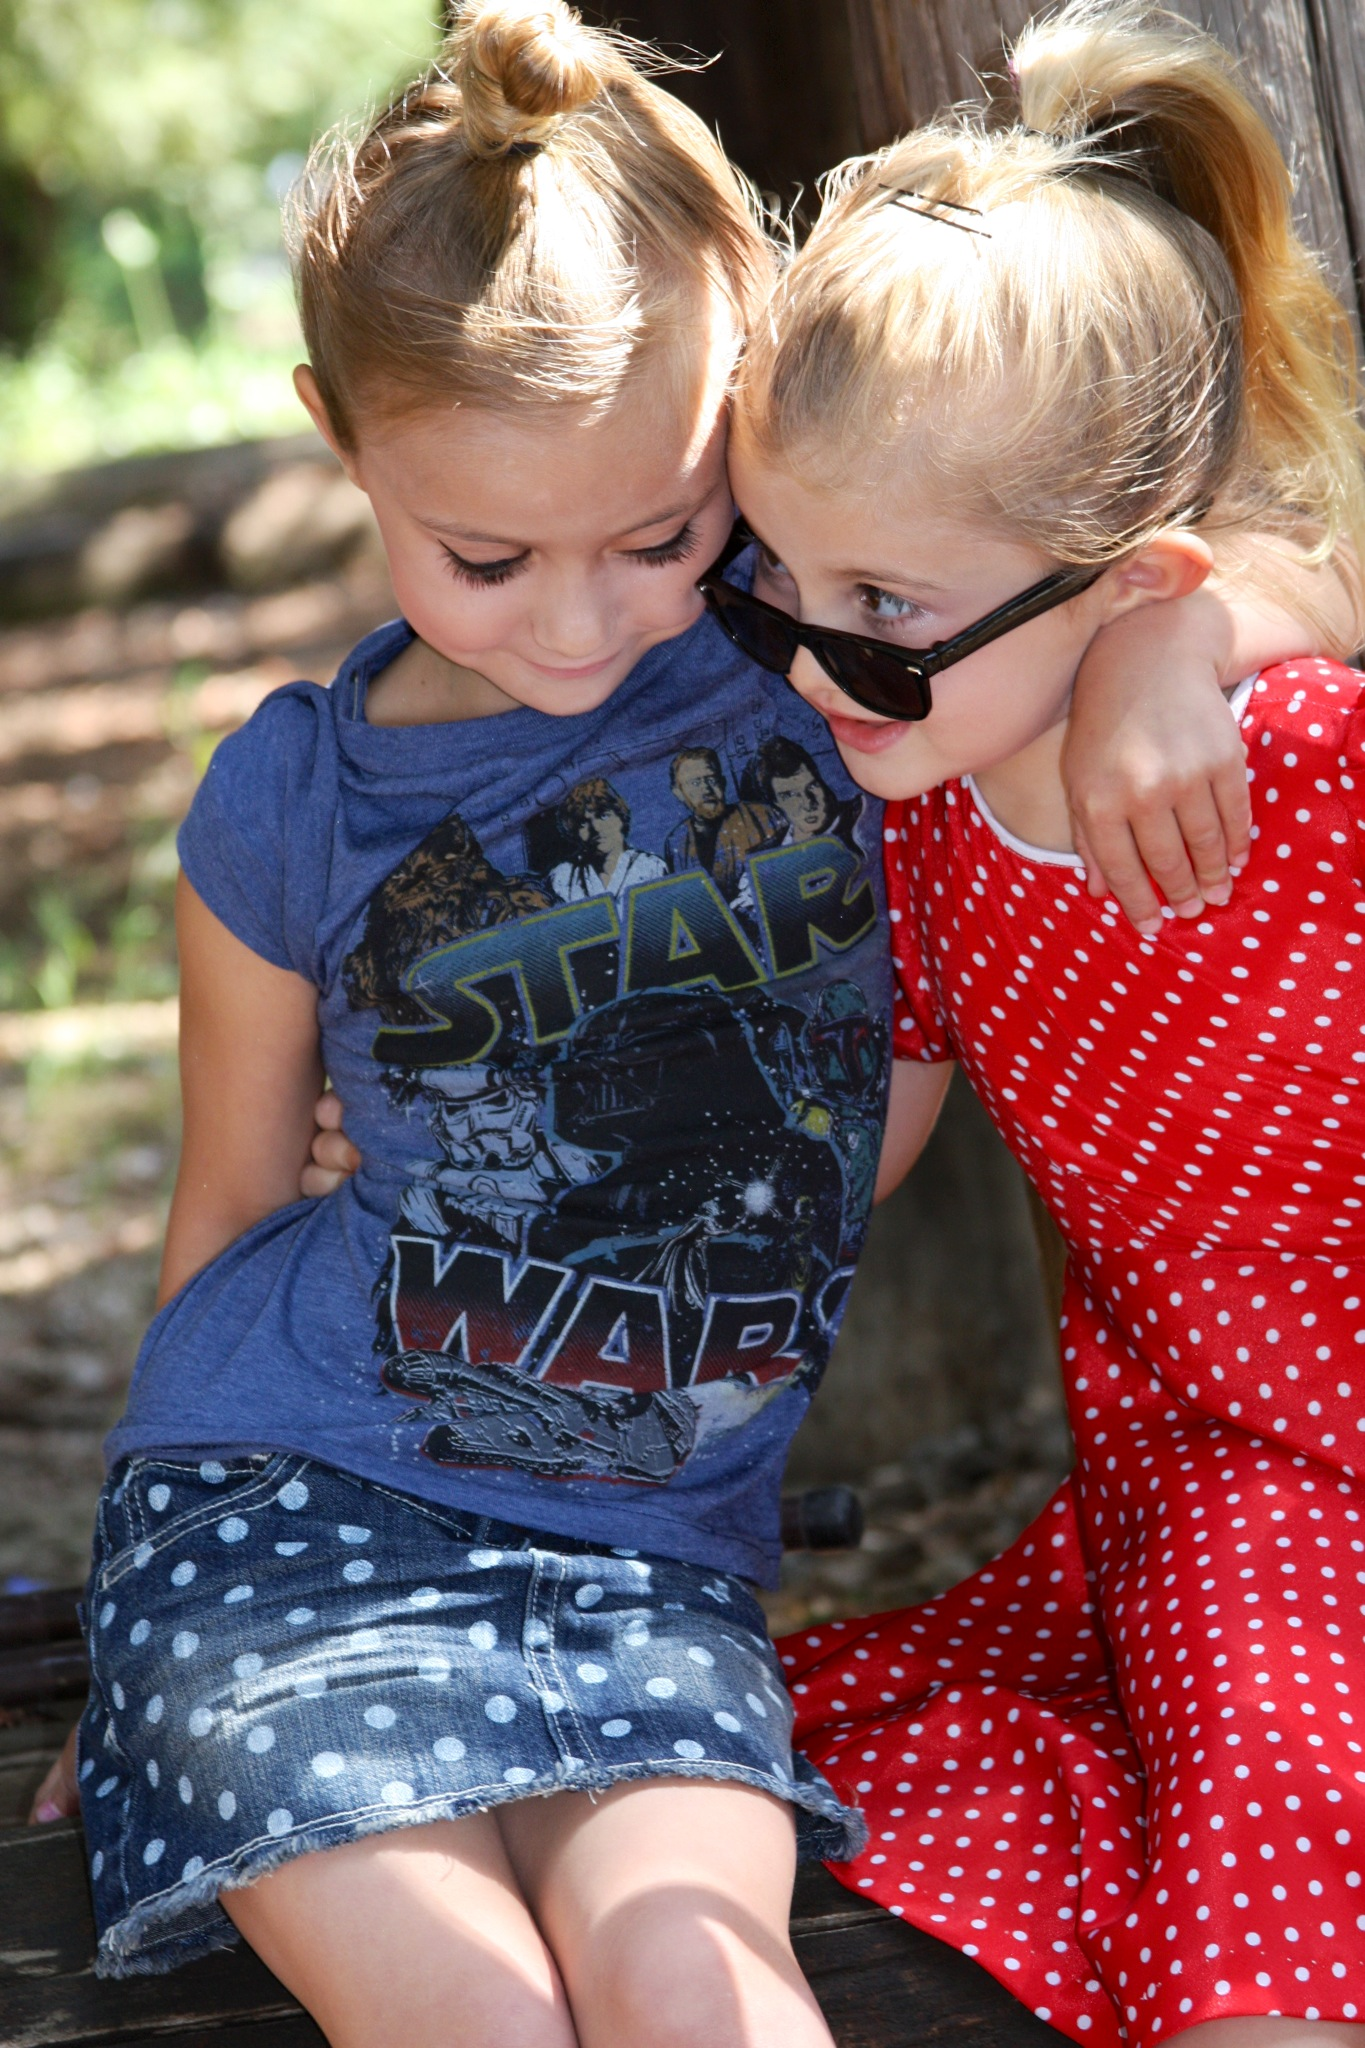 two young girls, Sierra and Charlie, Sierra wearing a blue Star Wars t-shirt and a polka dot denim skirt, cahrlie wearing a red dress and sunglasses